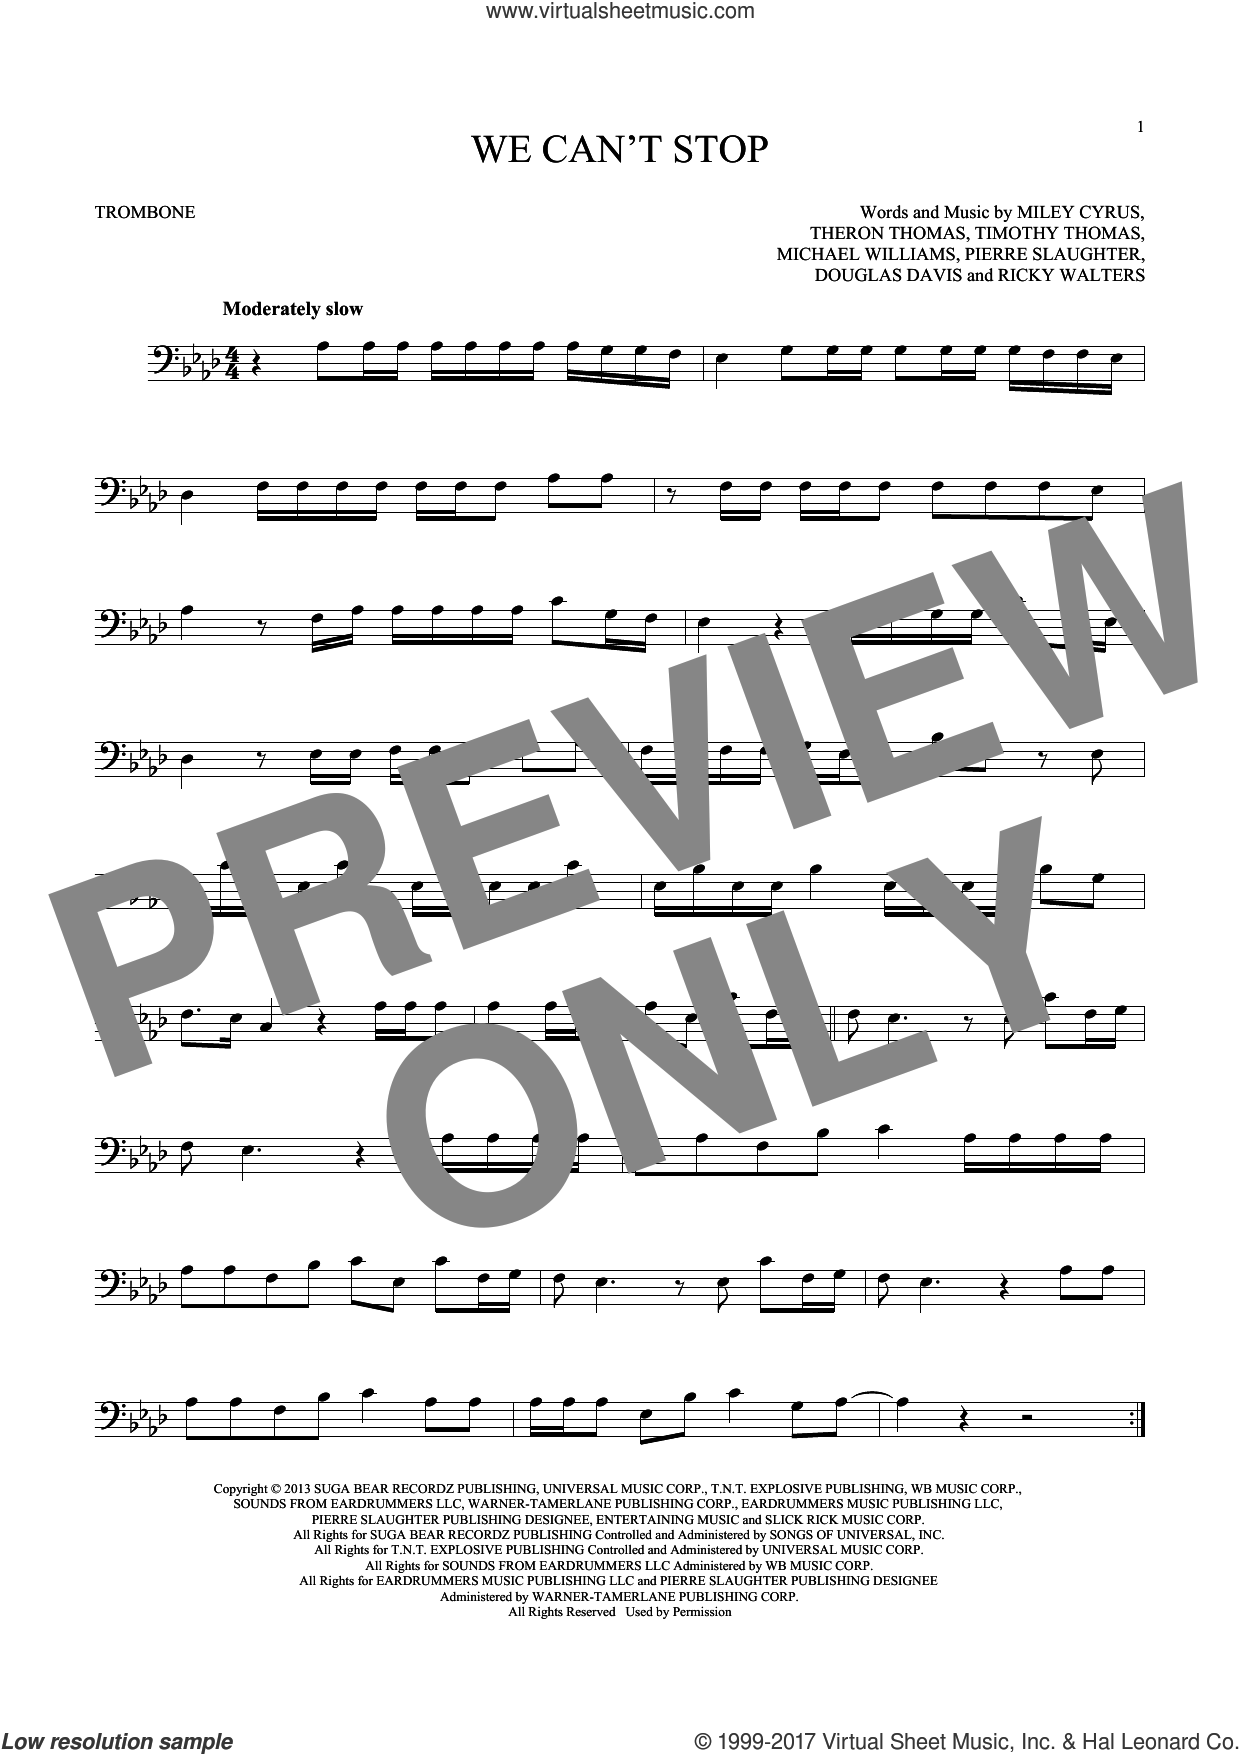 We Can't Stop sheet music for trombone solo by Miley Cyrus, Douglas Davis, Michael Williams, Pierre Slaughter, Ricky Walters, Theron Thomas and Timmy Thomas, intermediate skill level